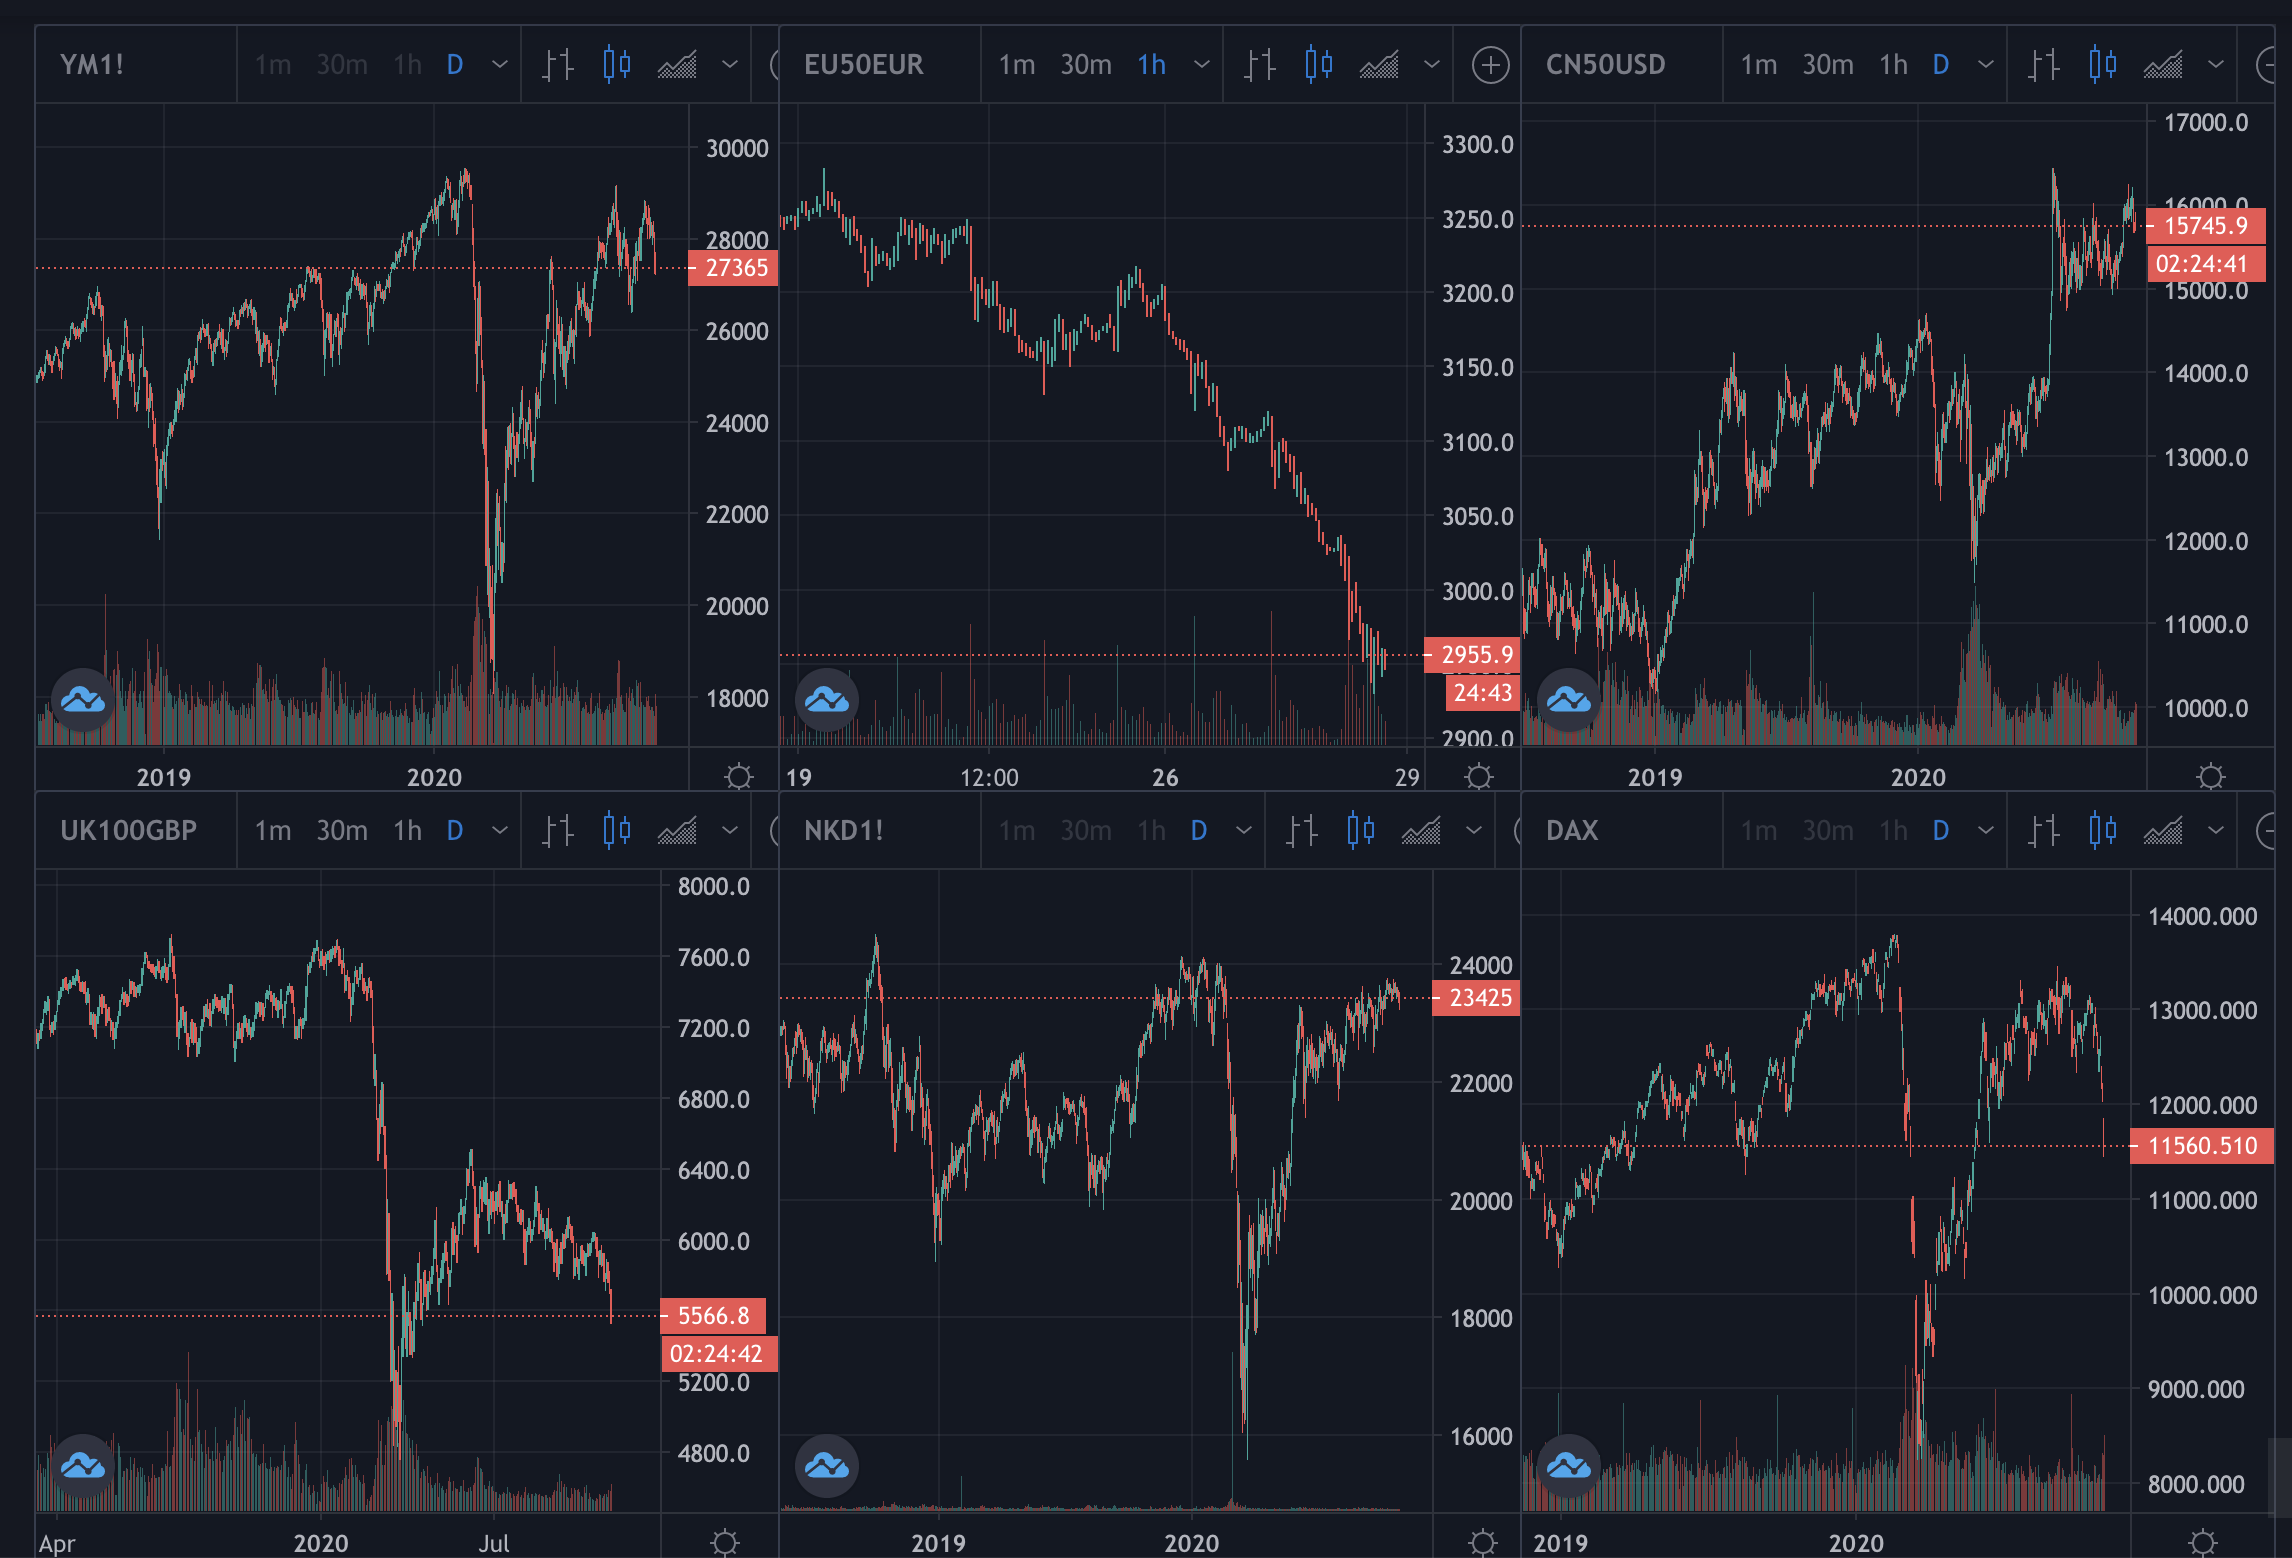 Stock prices, October 2020